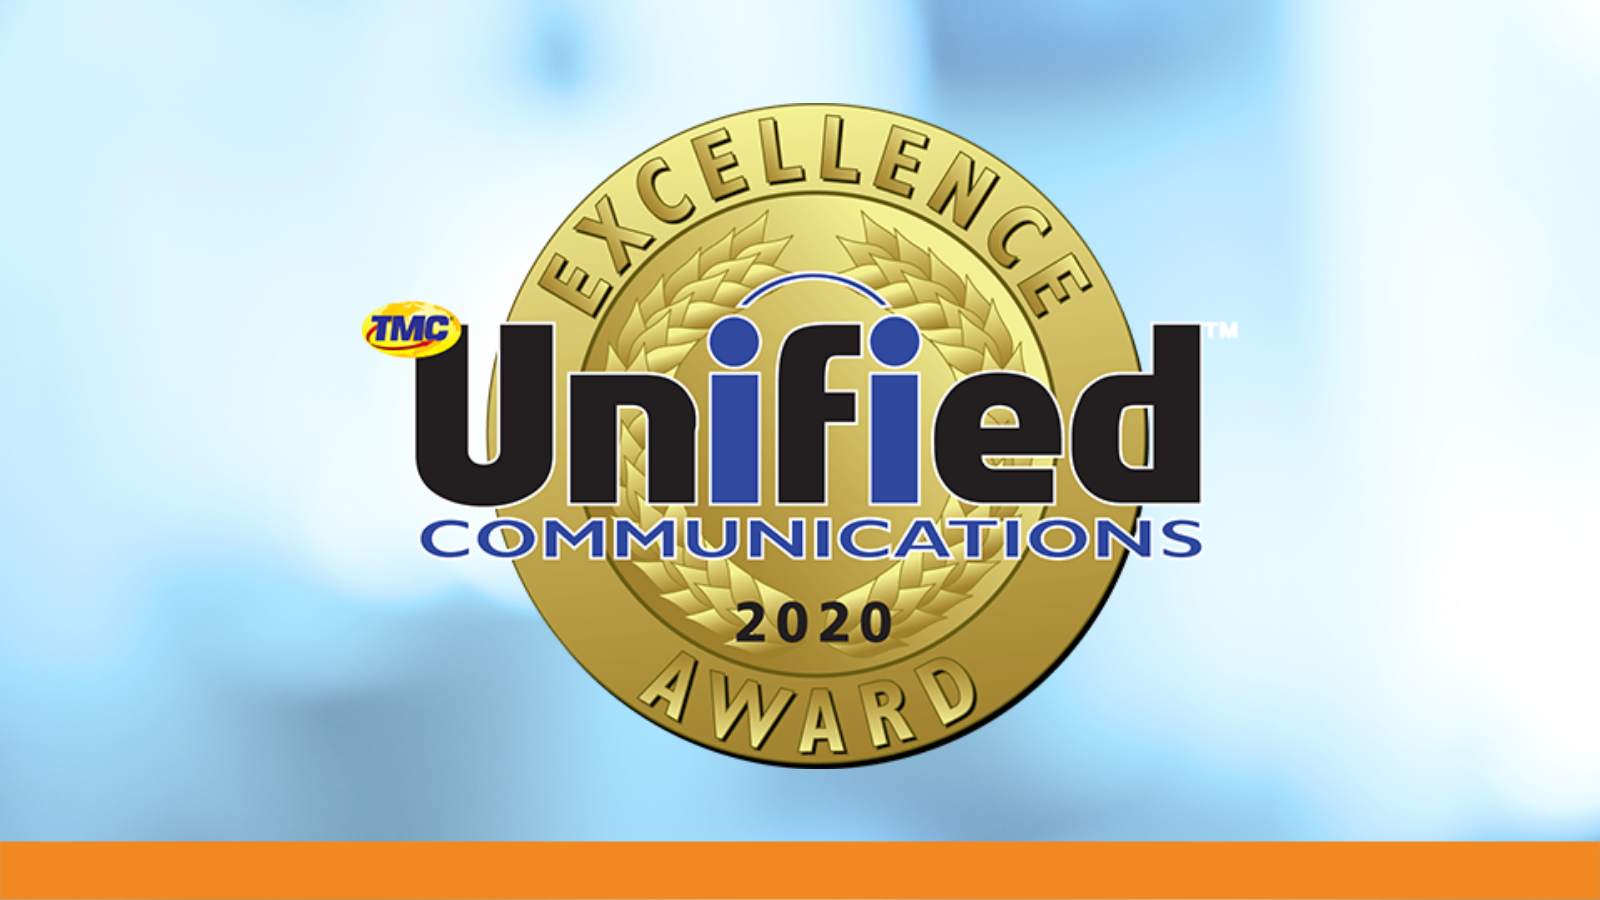 Reinvent Telecom Wins 2020 UC Excellence Award by INTERNET TELEPHONY